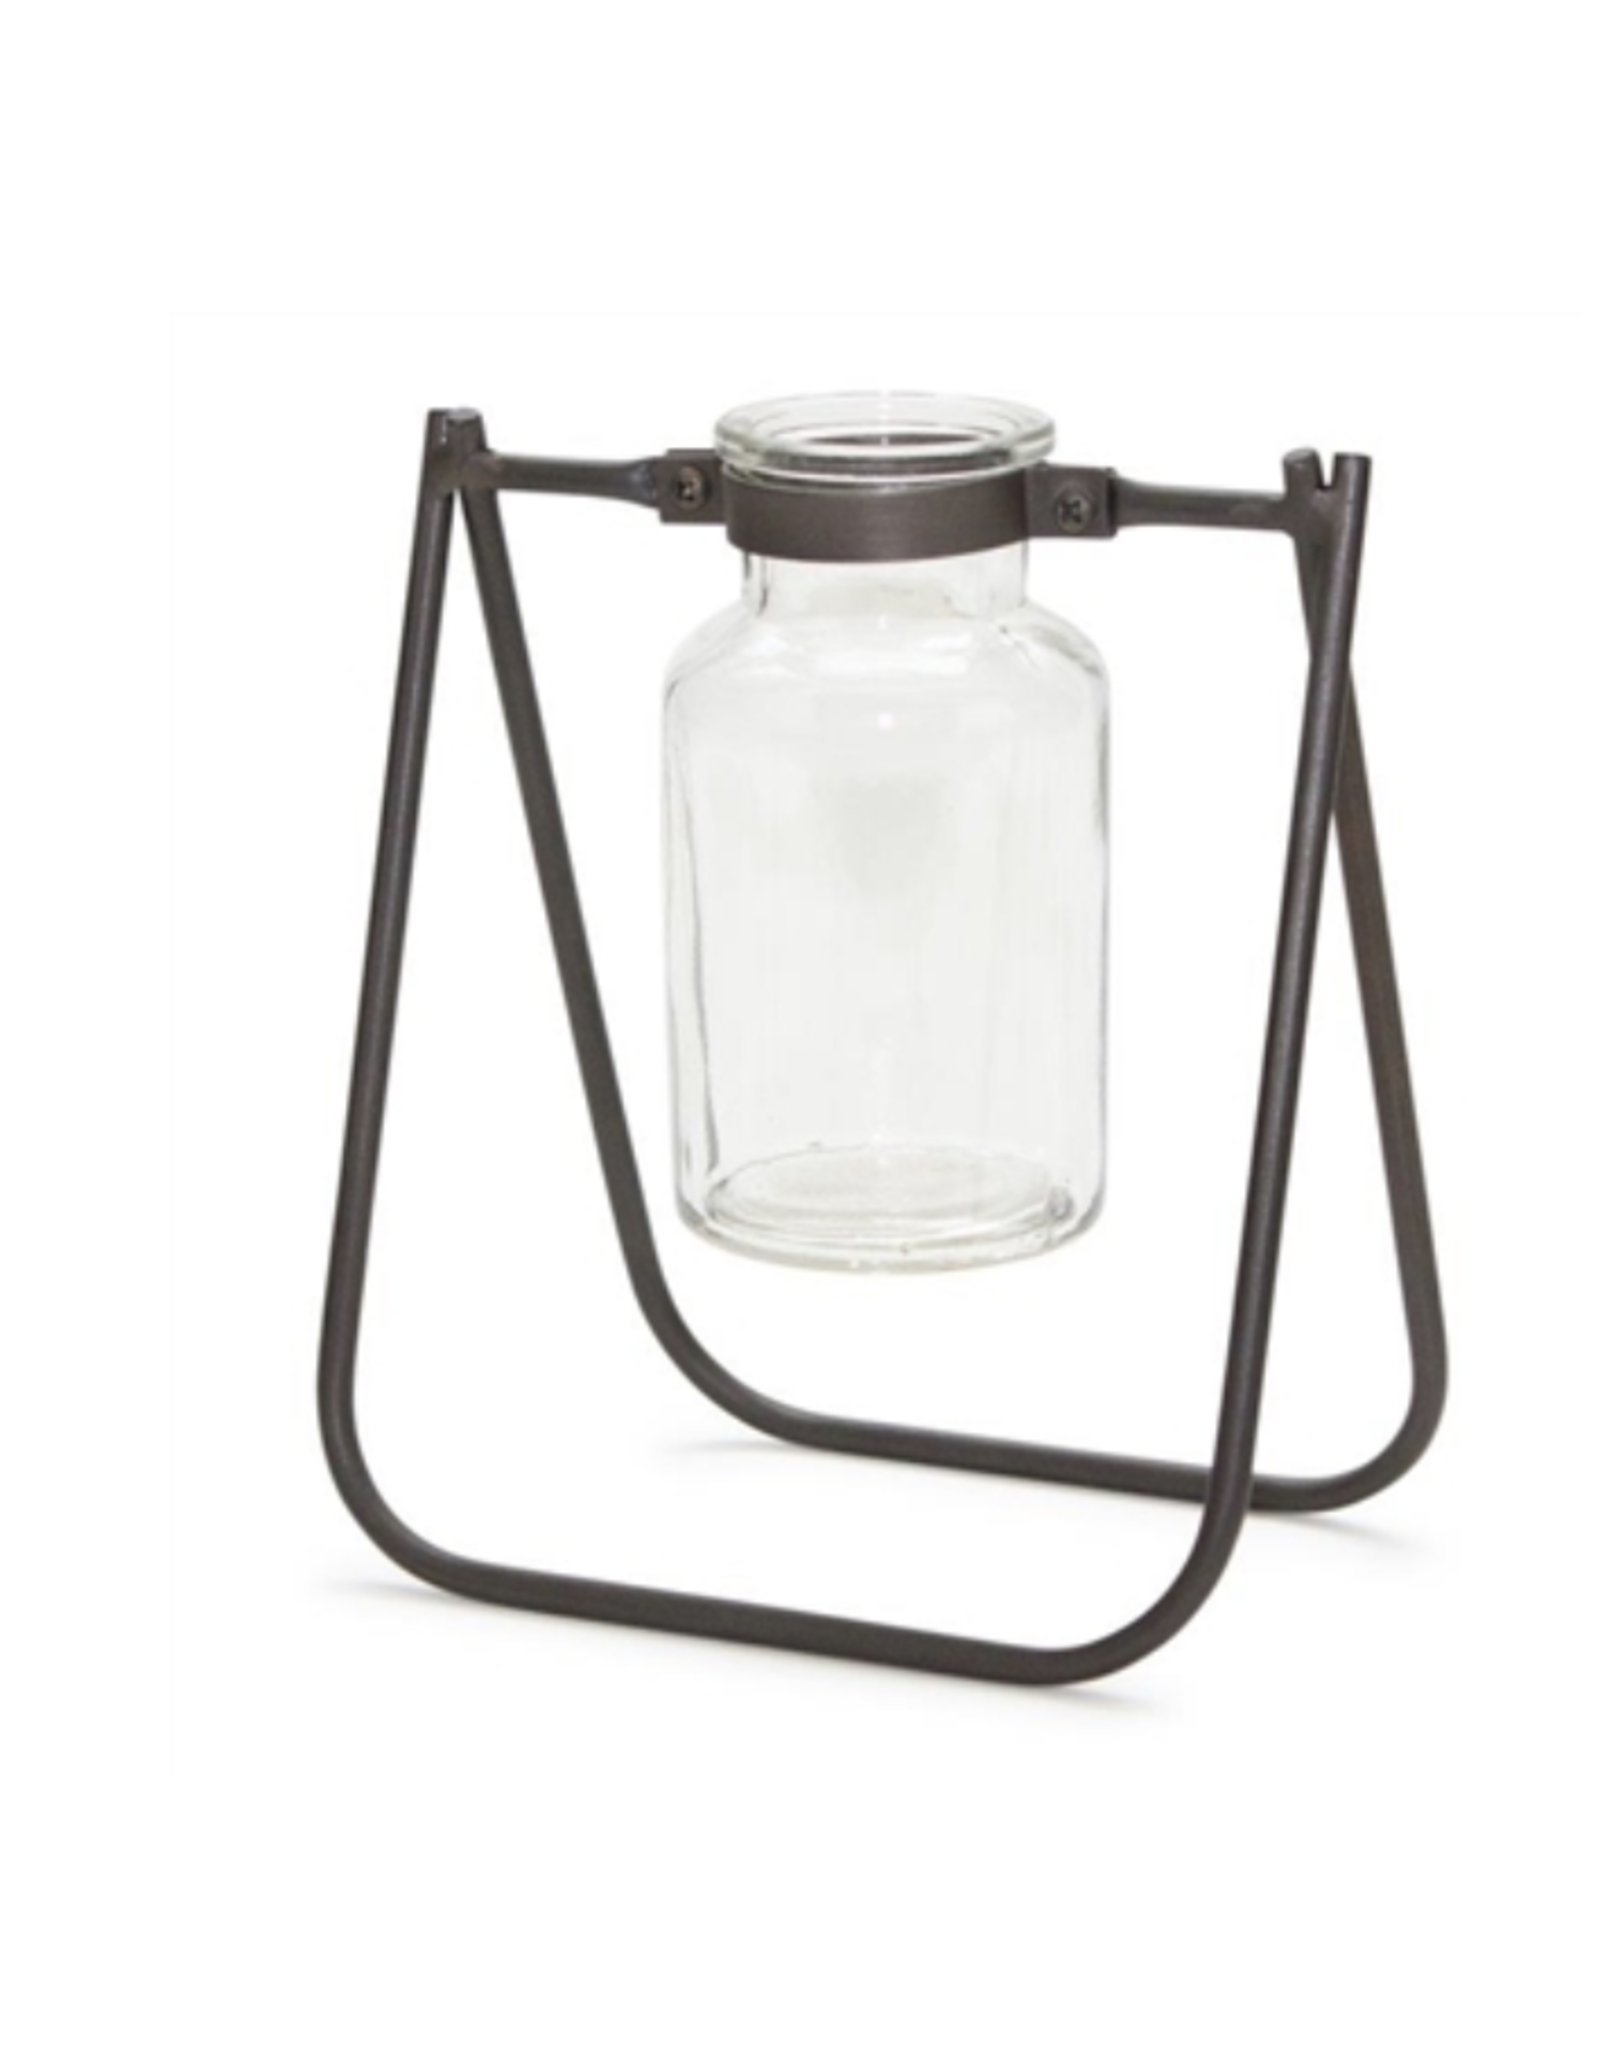 Melrose Iron & Glas Jar with Stand